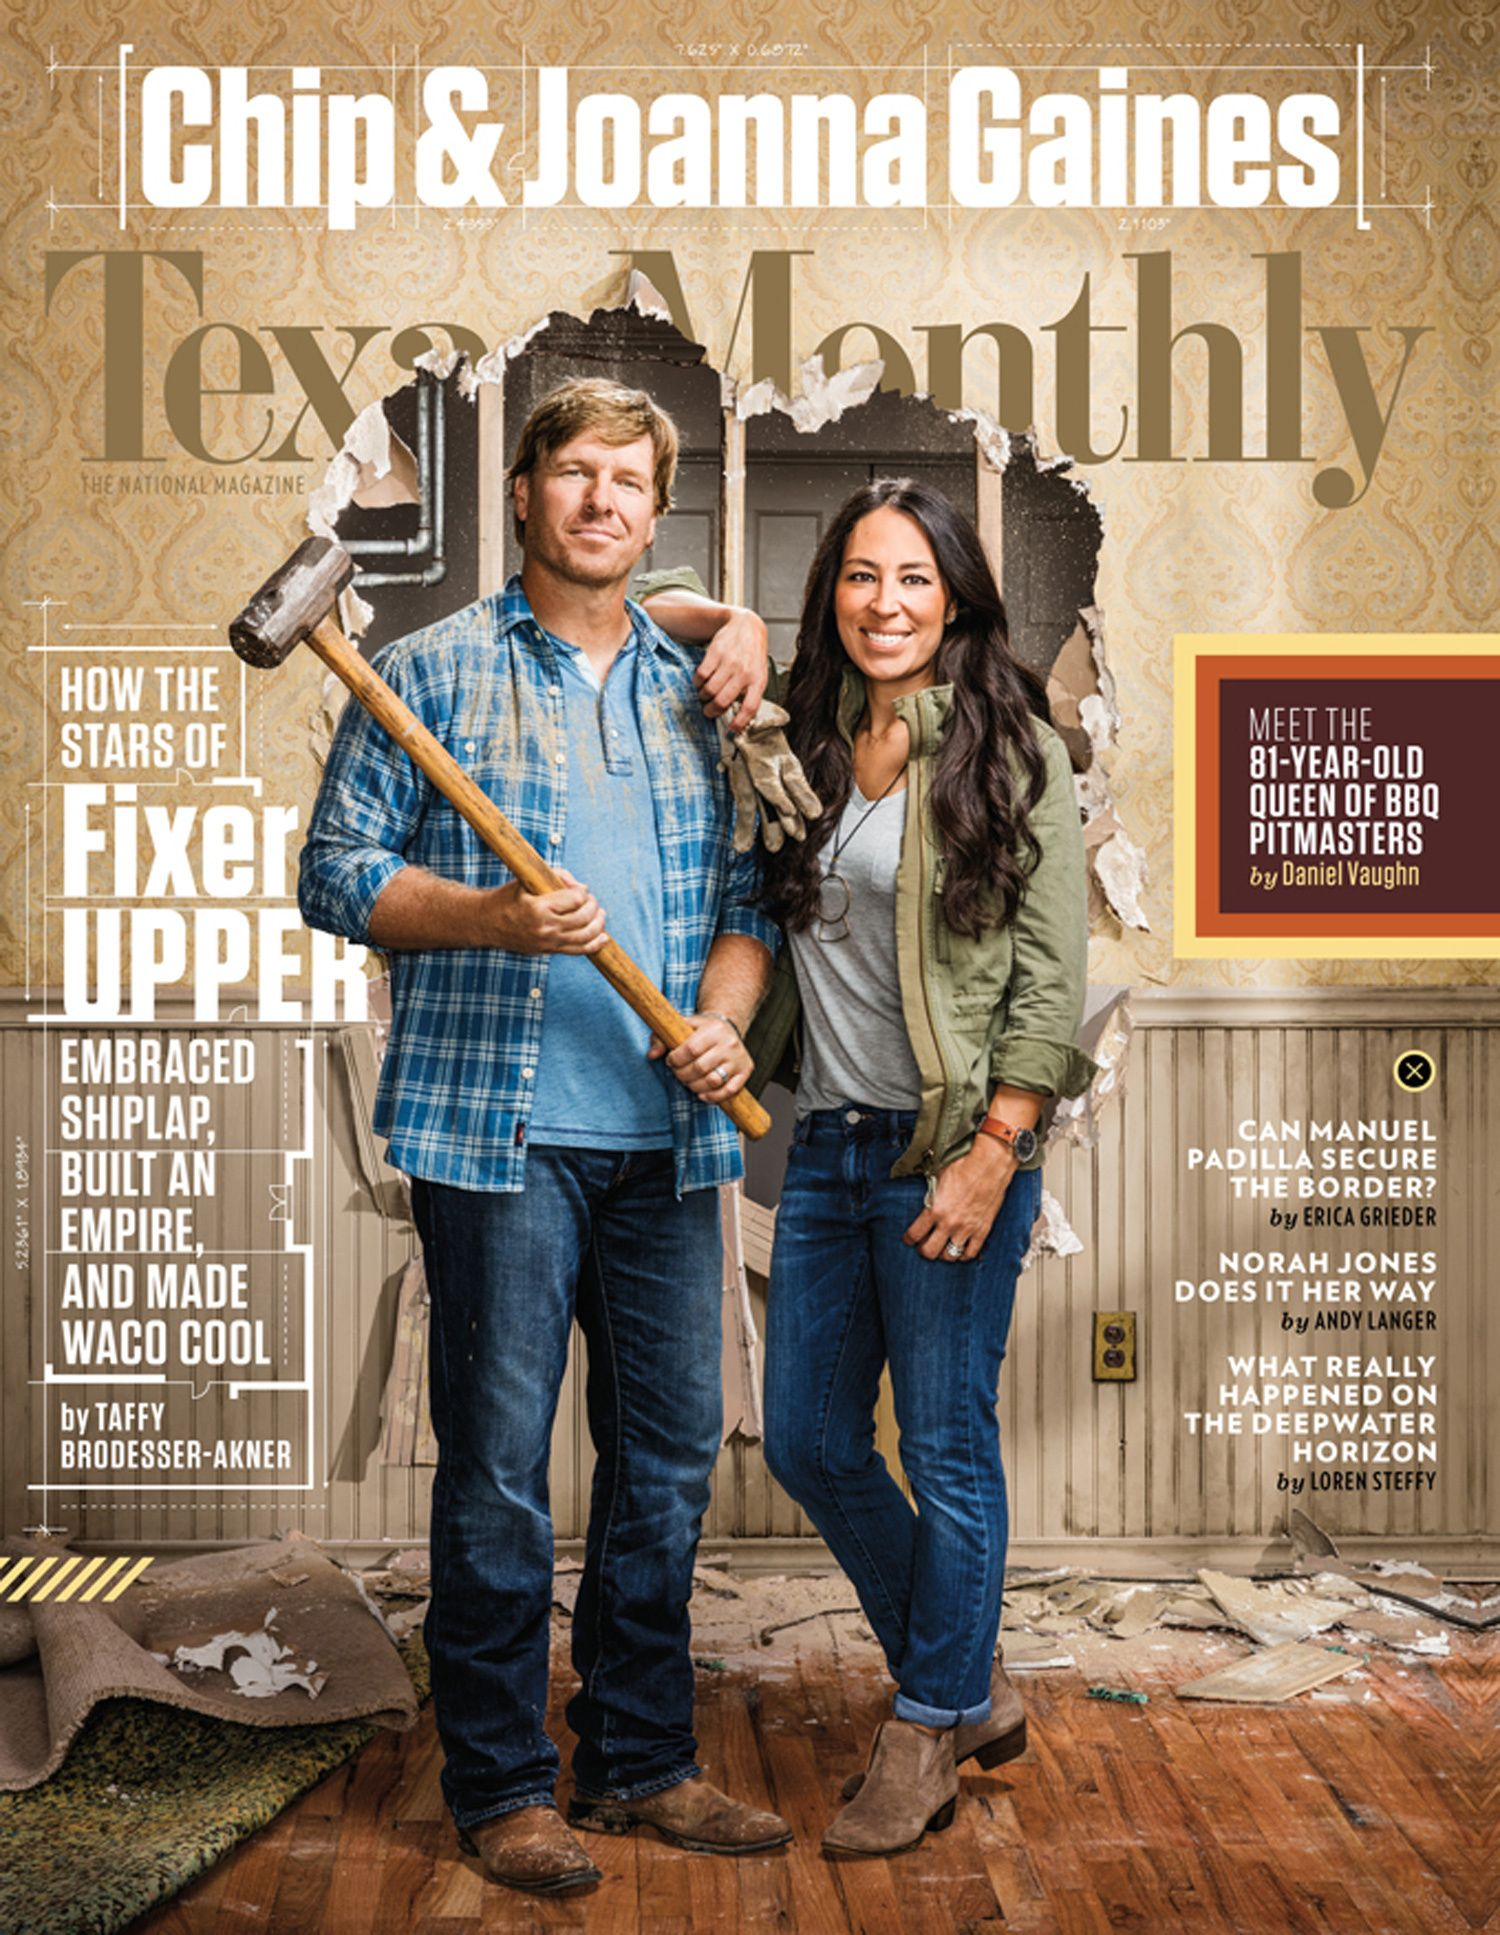 Hgtv S Chip And Joanna Gaines Get Real About Fixer Upper Fame There Are Some Downsides To This